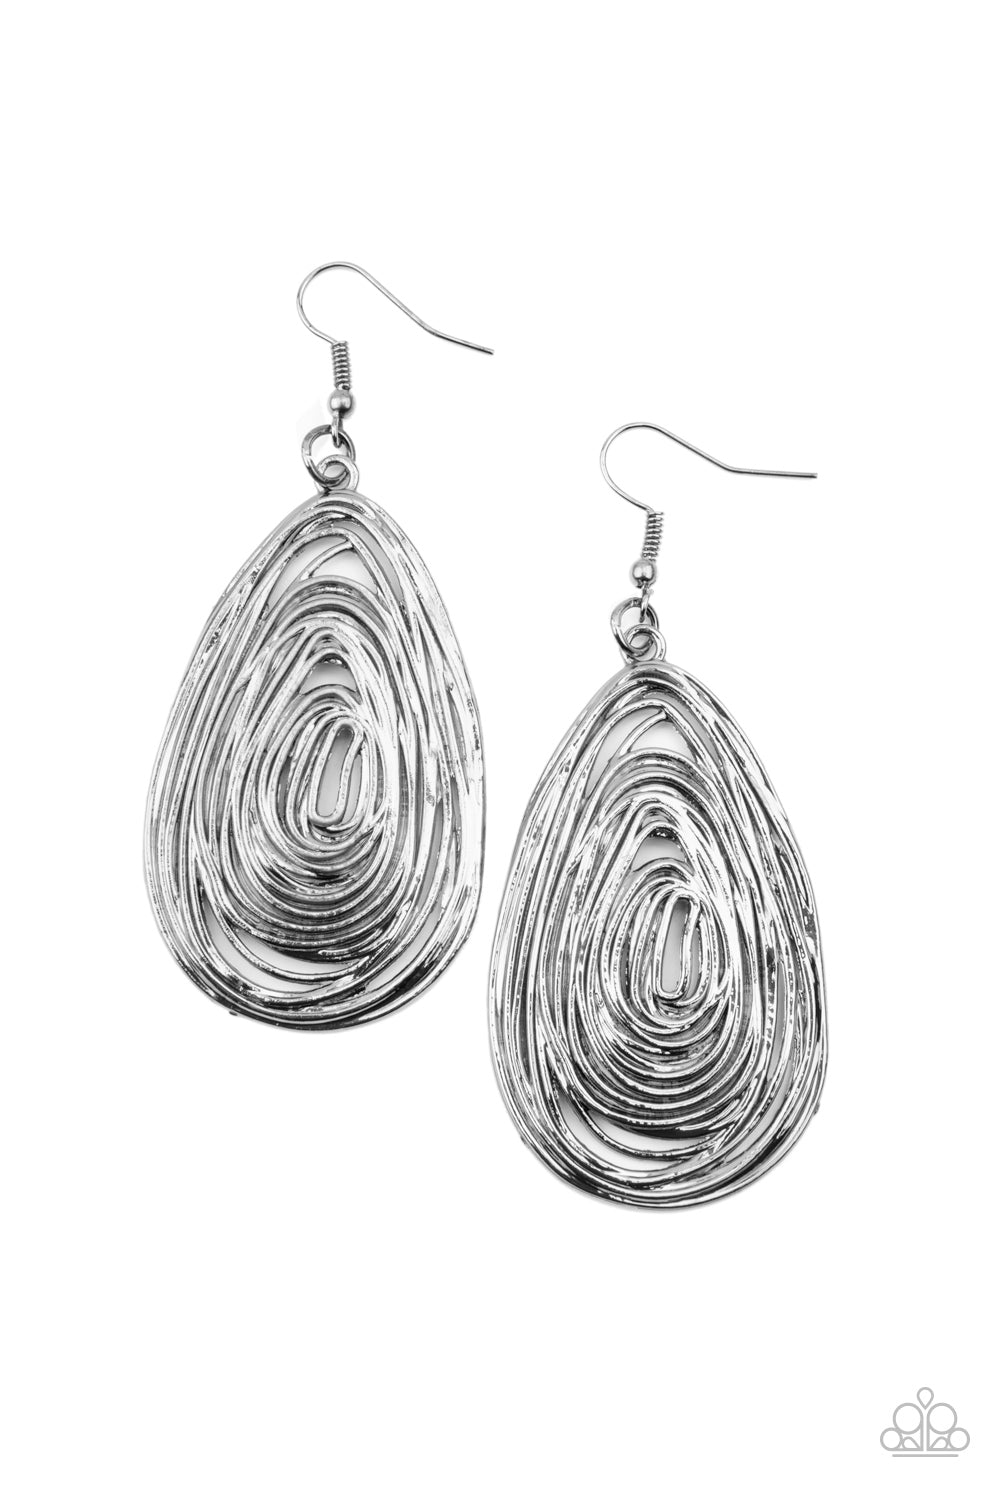 five-dollar-jewelry-rural-ripples-black-earrings-paparazzi-accessories